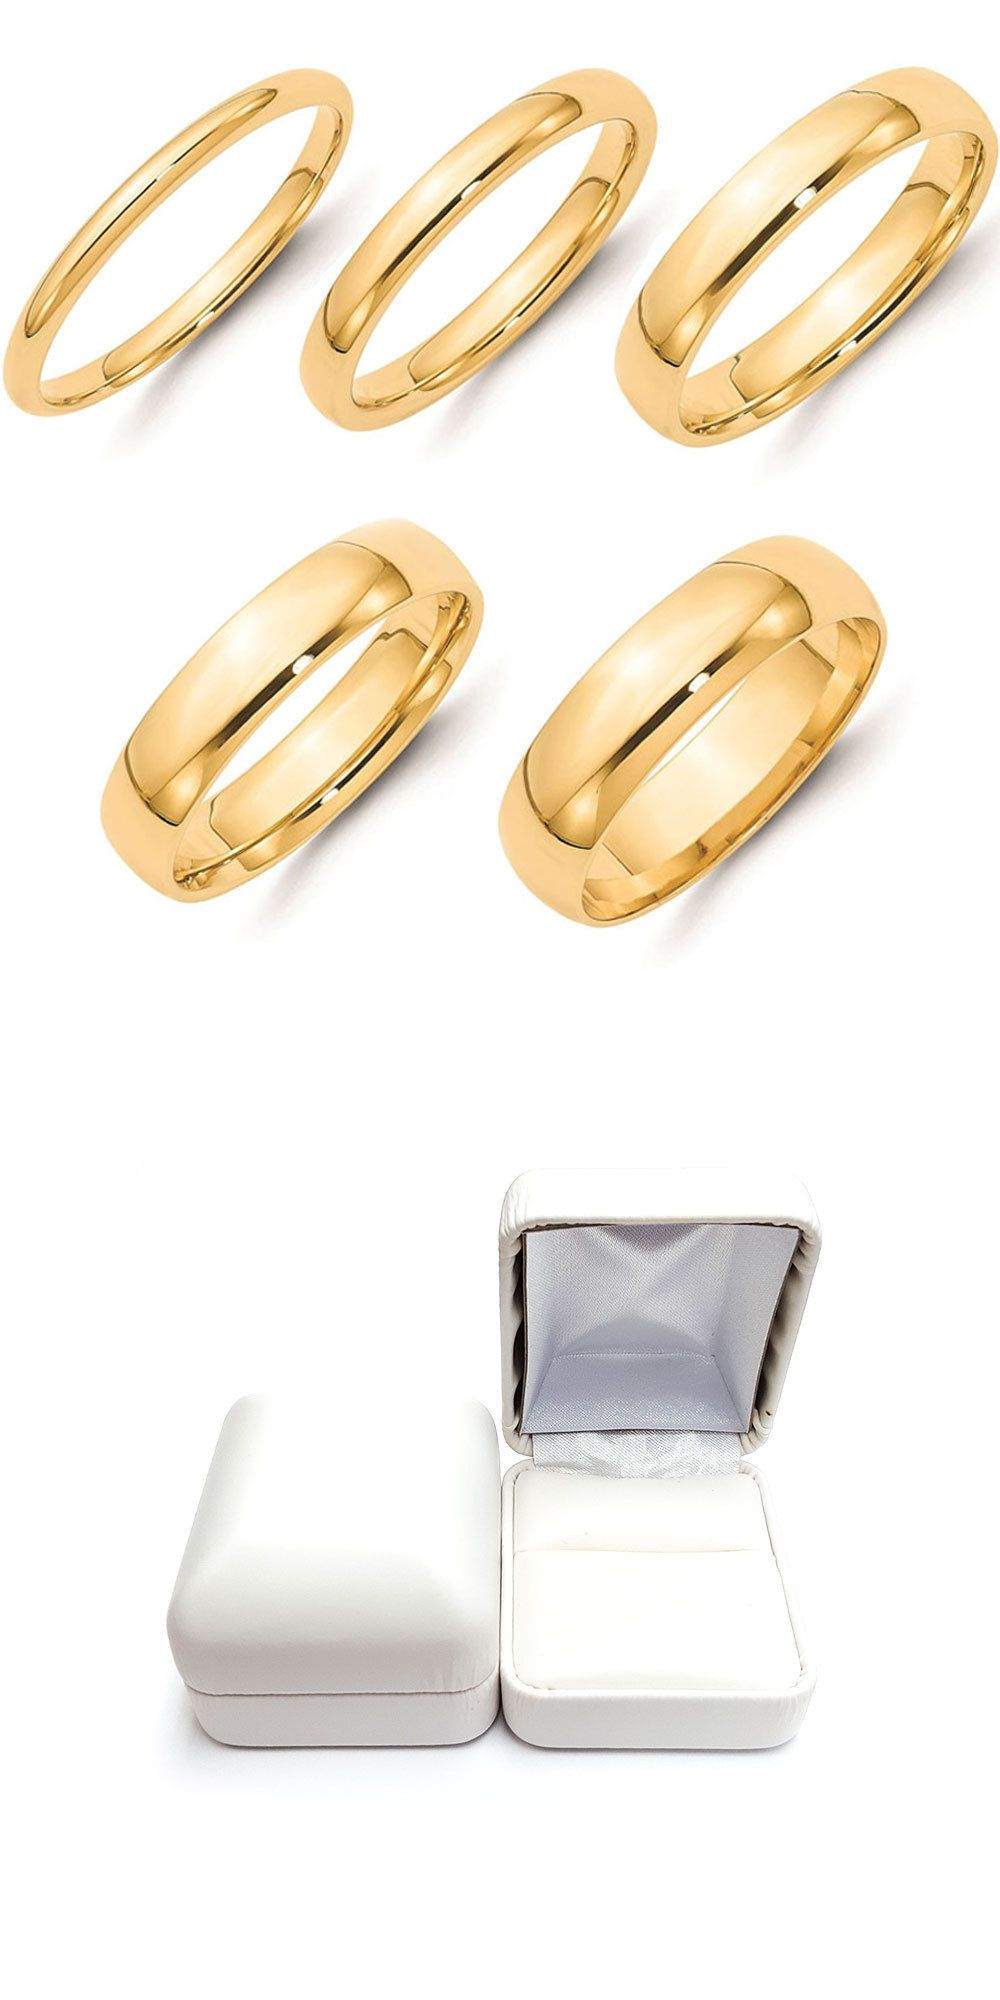 Bands without Stones 92852: Solid 14K Yellow Gold 2Mm 3Mm 4Mm 5Mm 6Mm Plain Comfort Fit Wedding Band Ring -> BUY IT NOW ONLY: $205 on eBay!